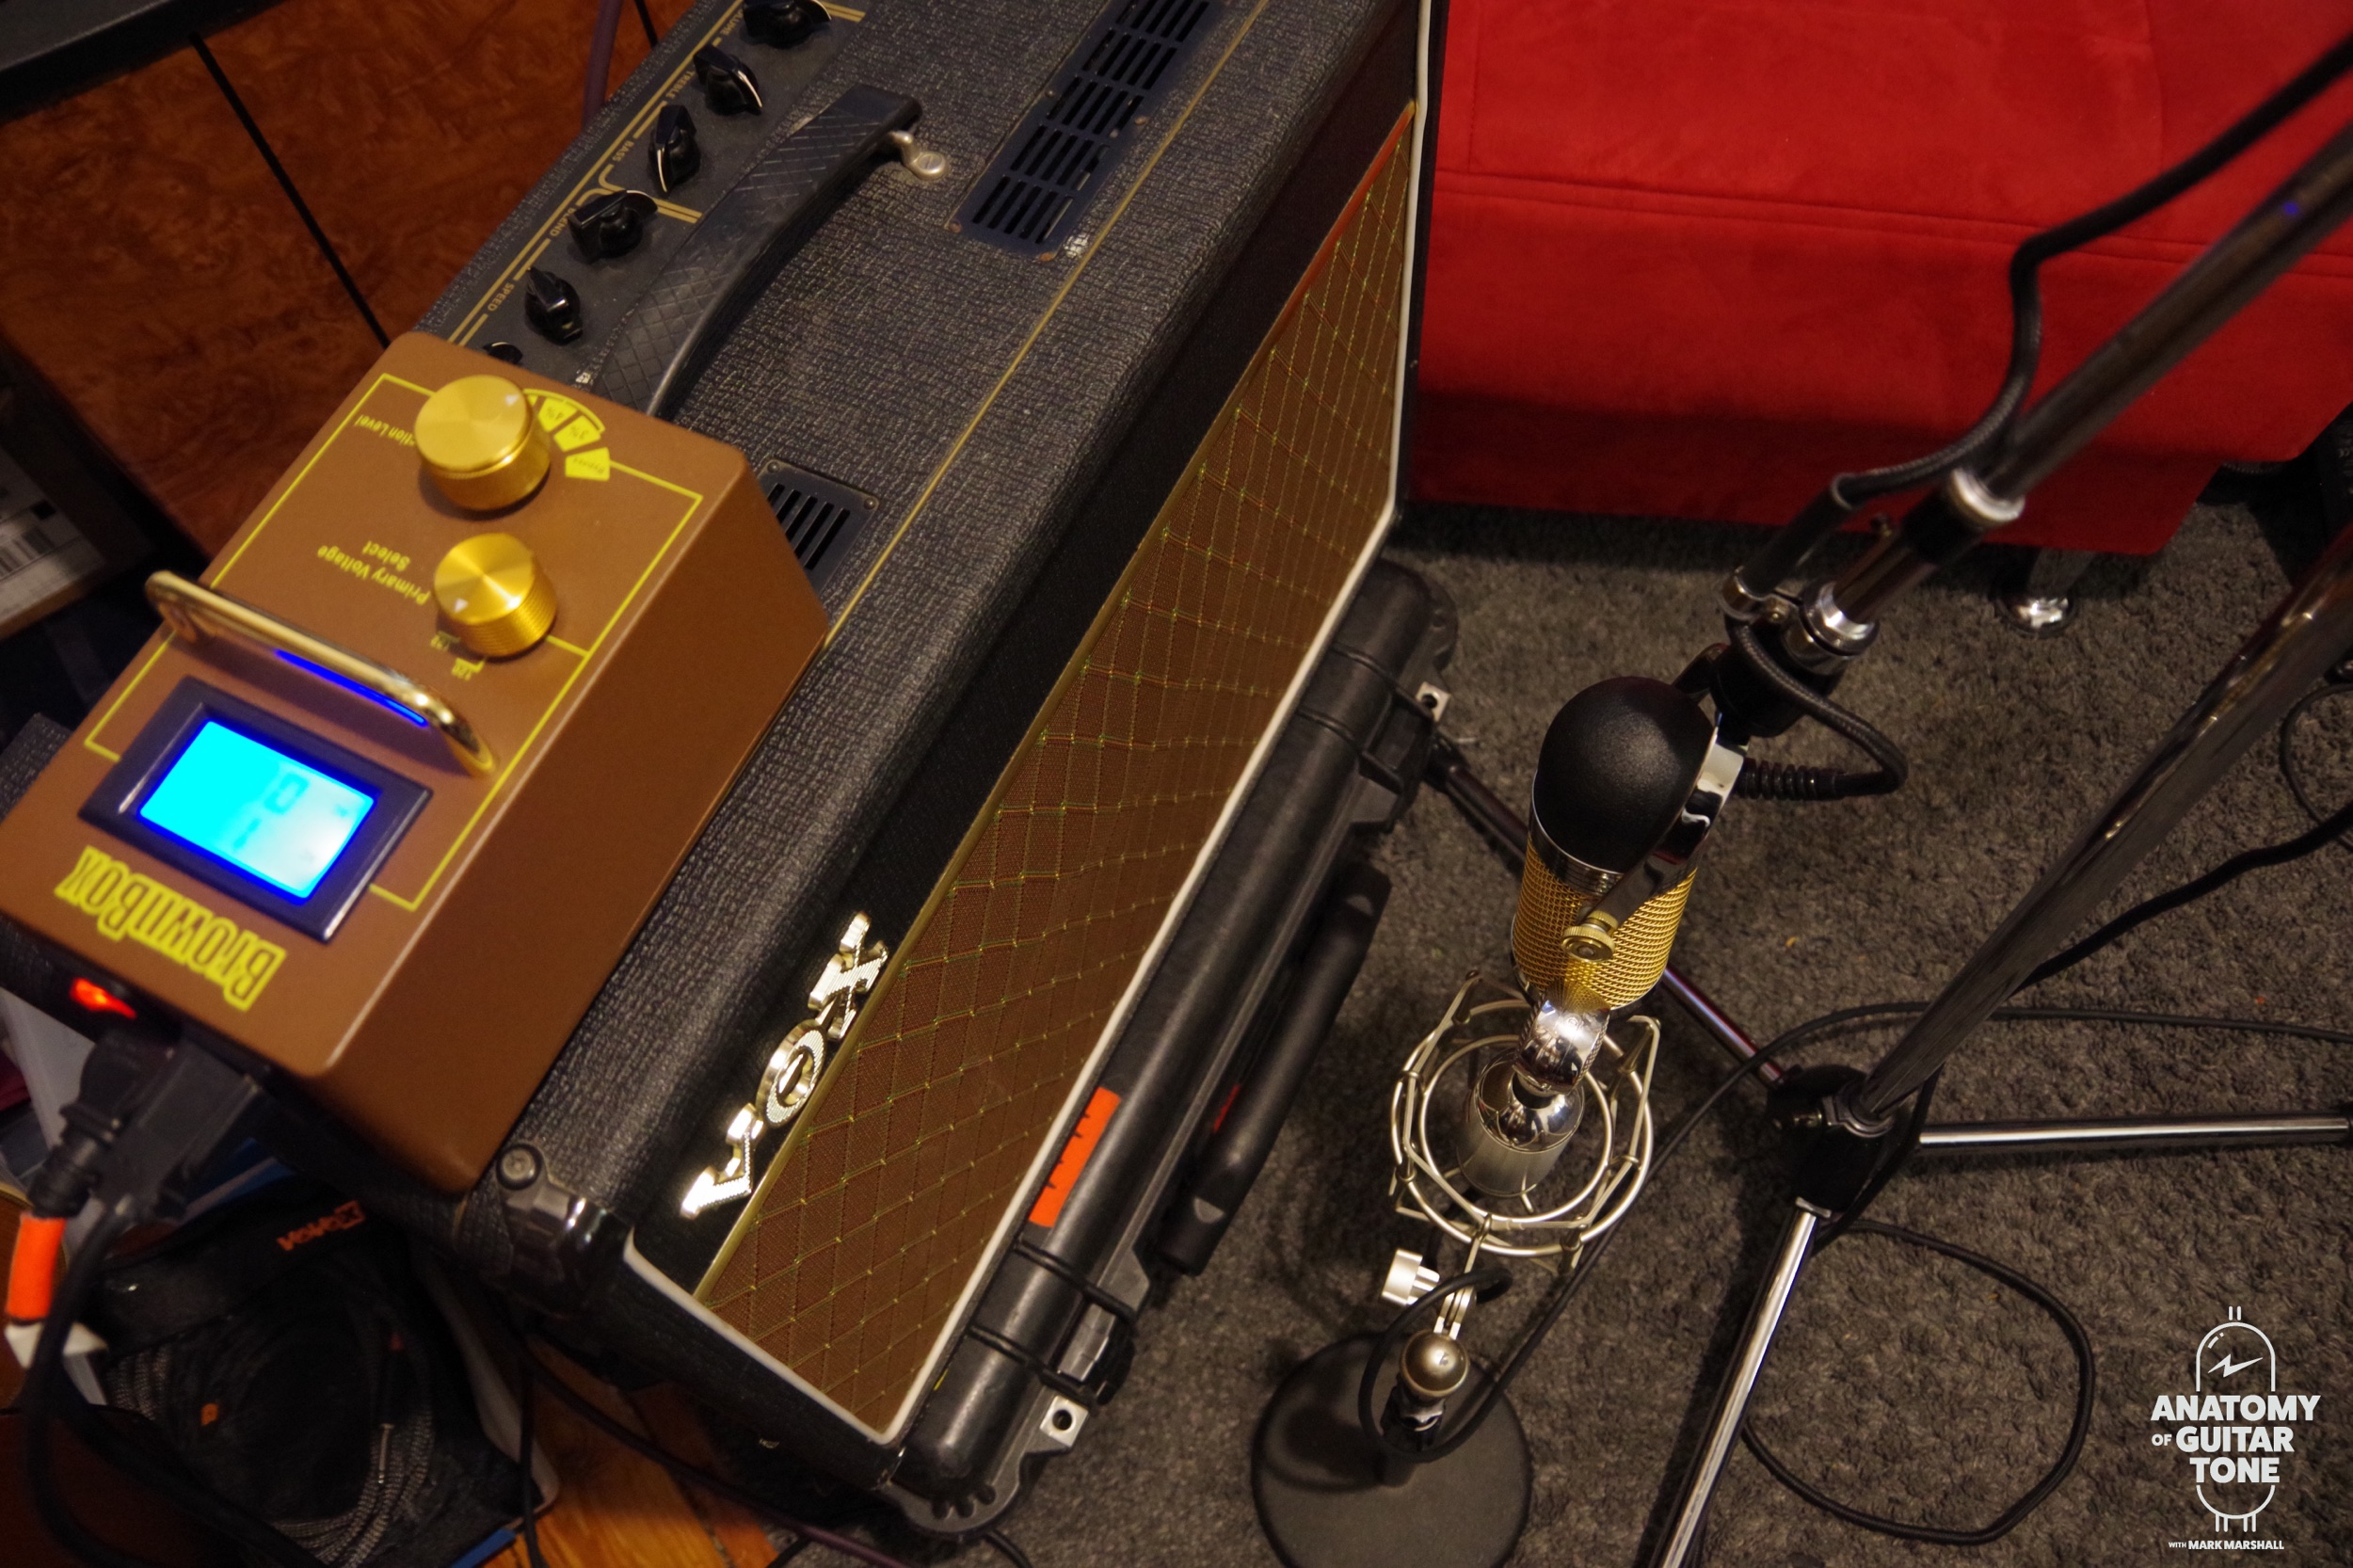 Brown Box with a Vox AC15